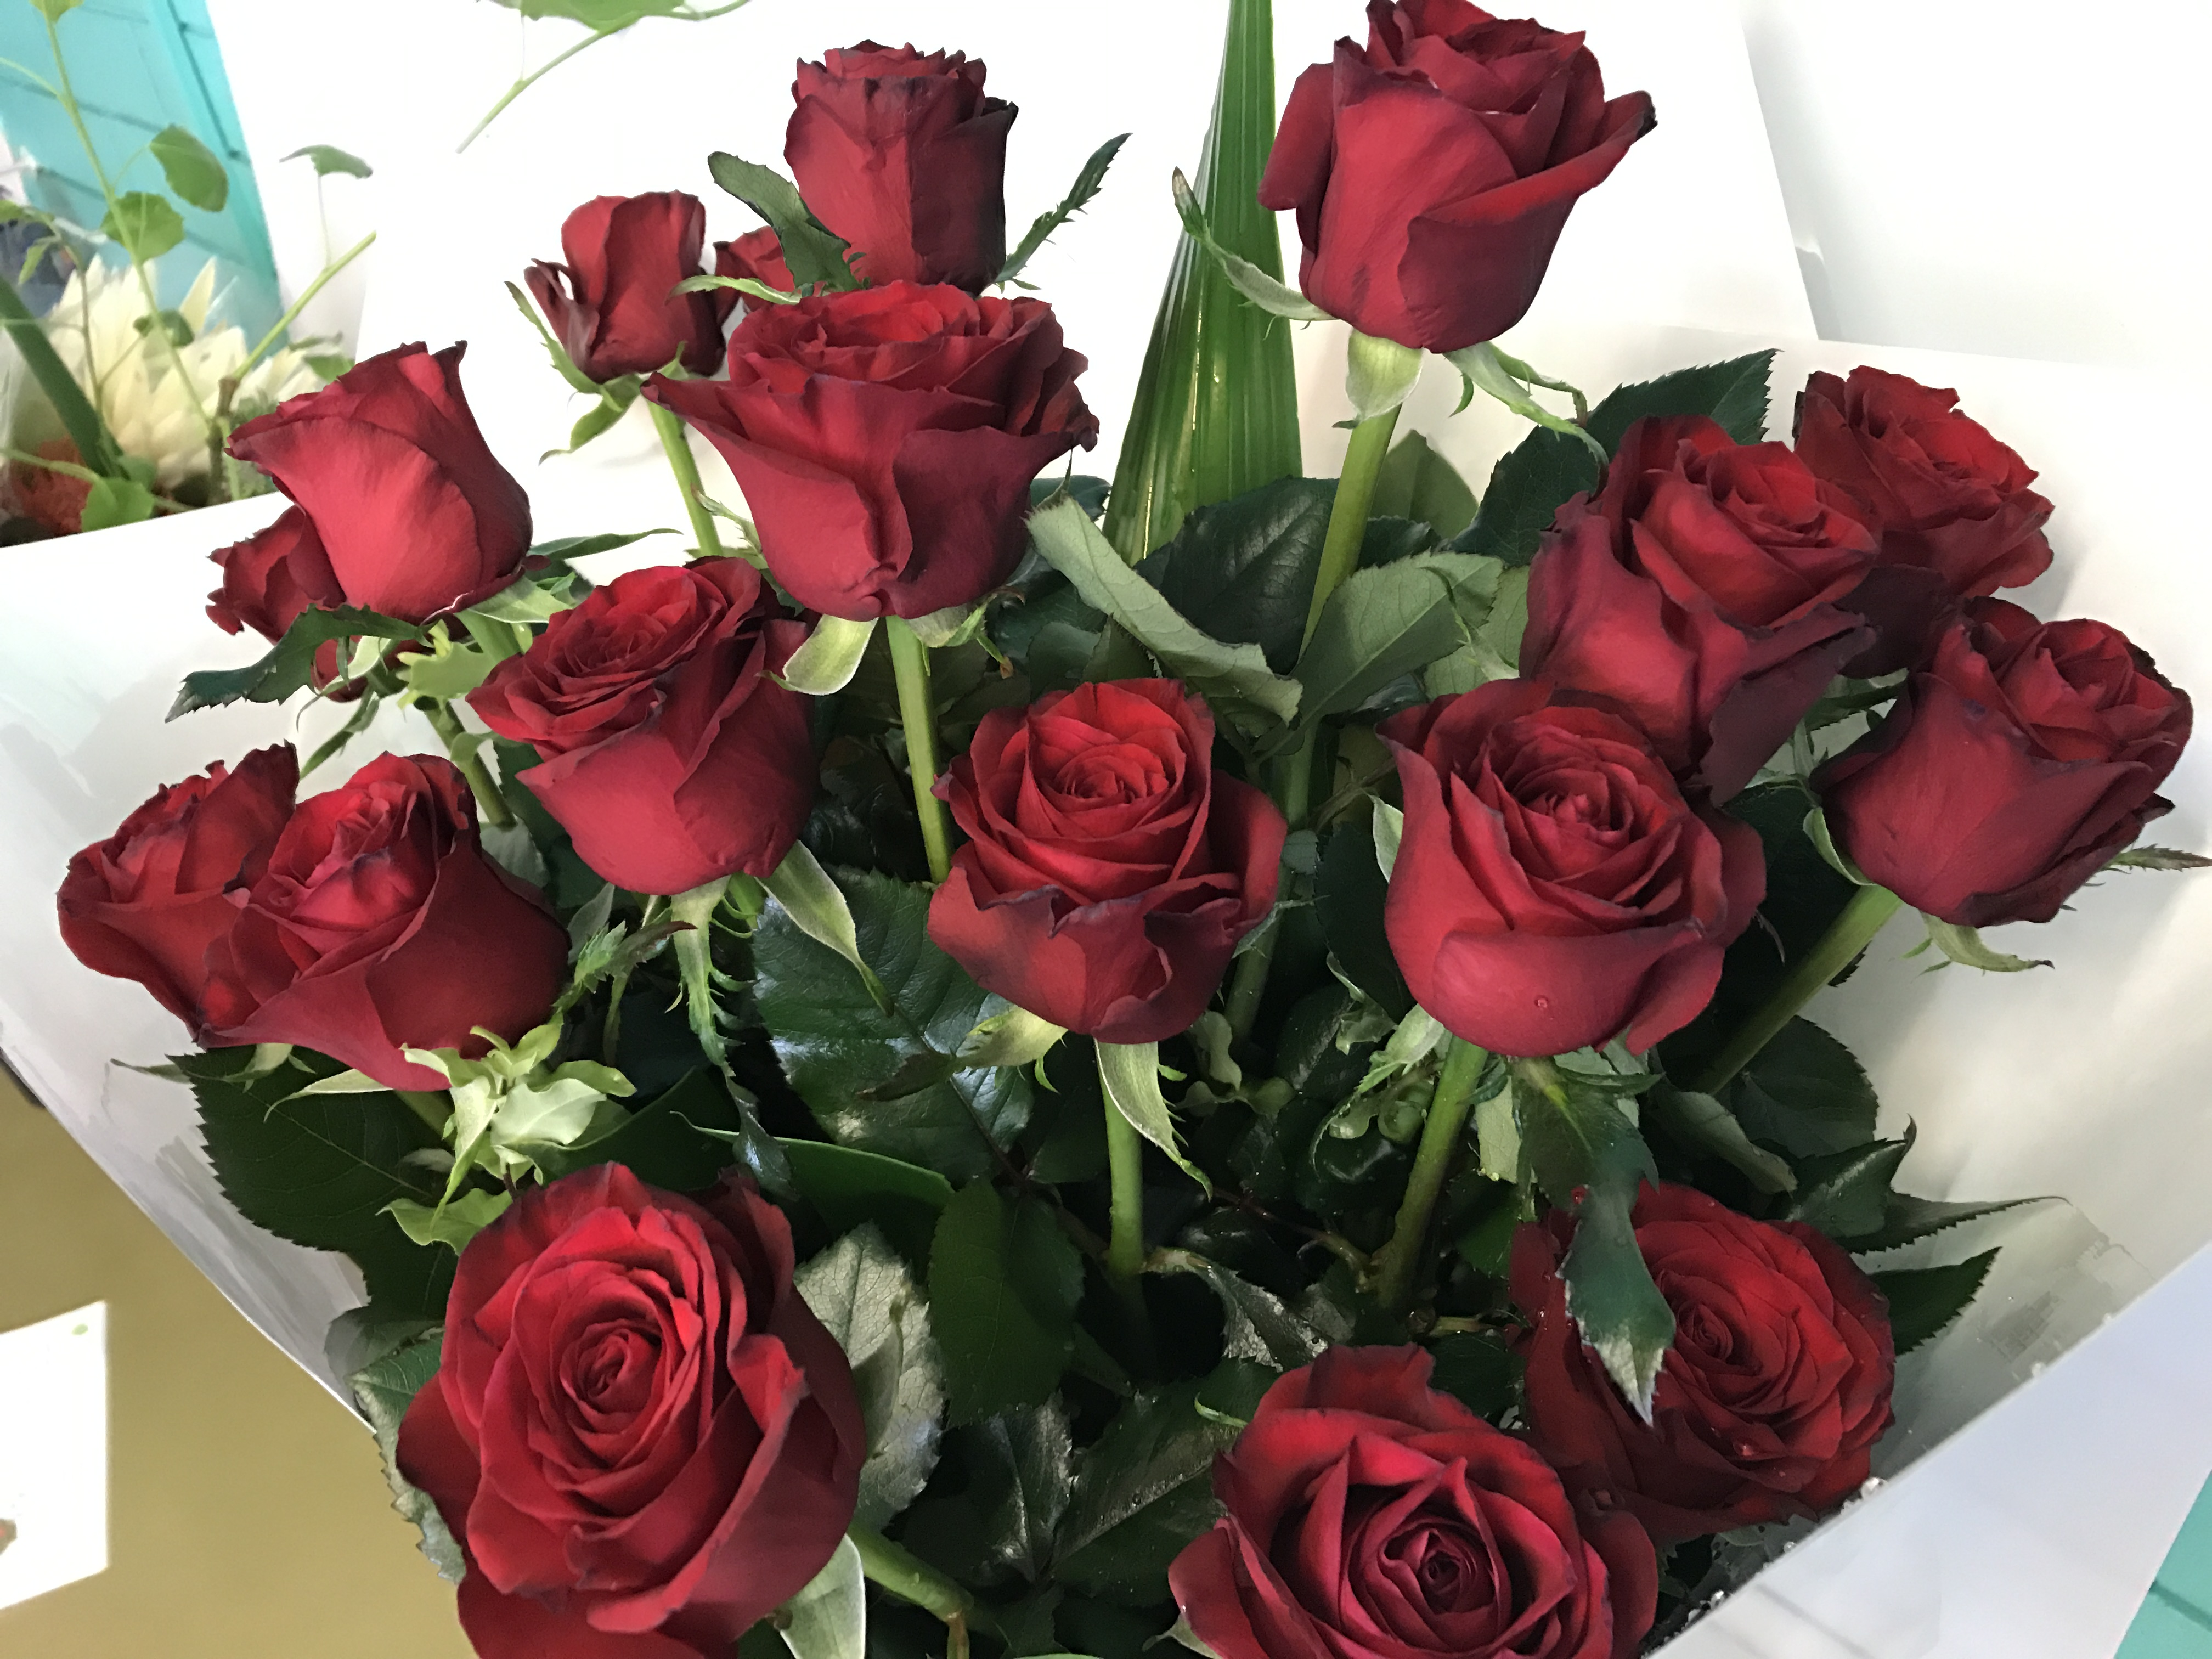 18 Premium Red roses in a presentation style bouquet